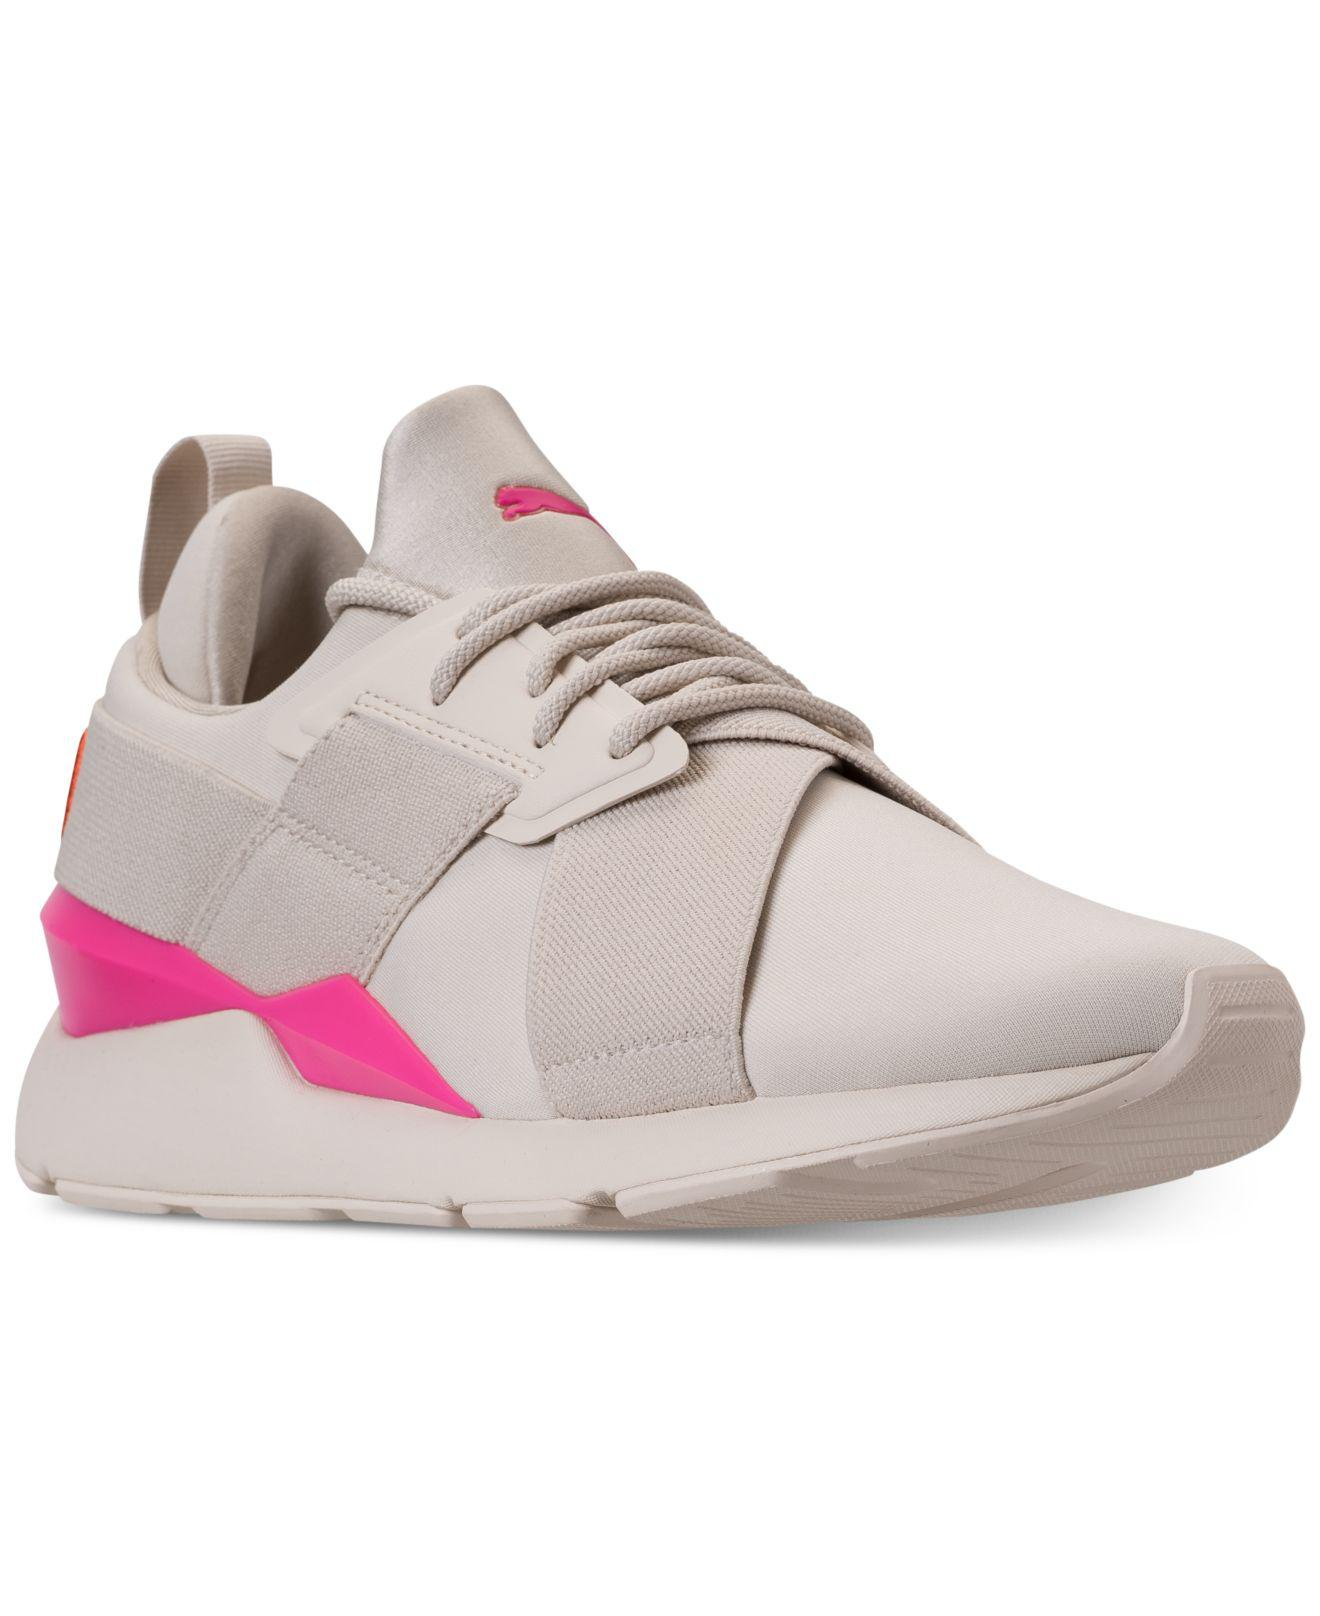 2976b16f8e7f Lyst - PUMA Muse Chase Casual Sneakers From Finish Line in Pink